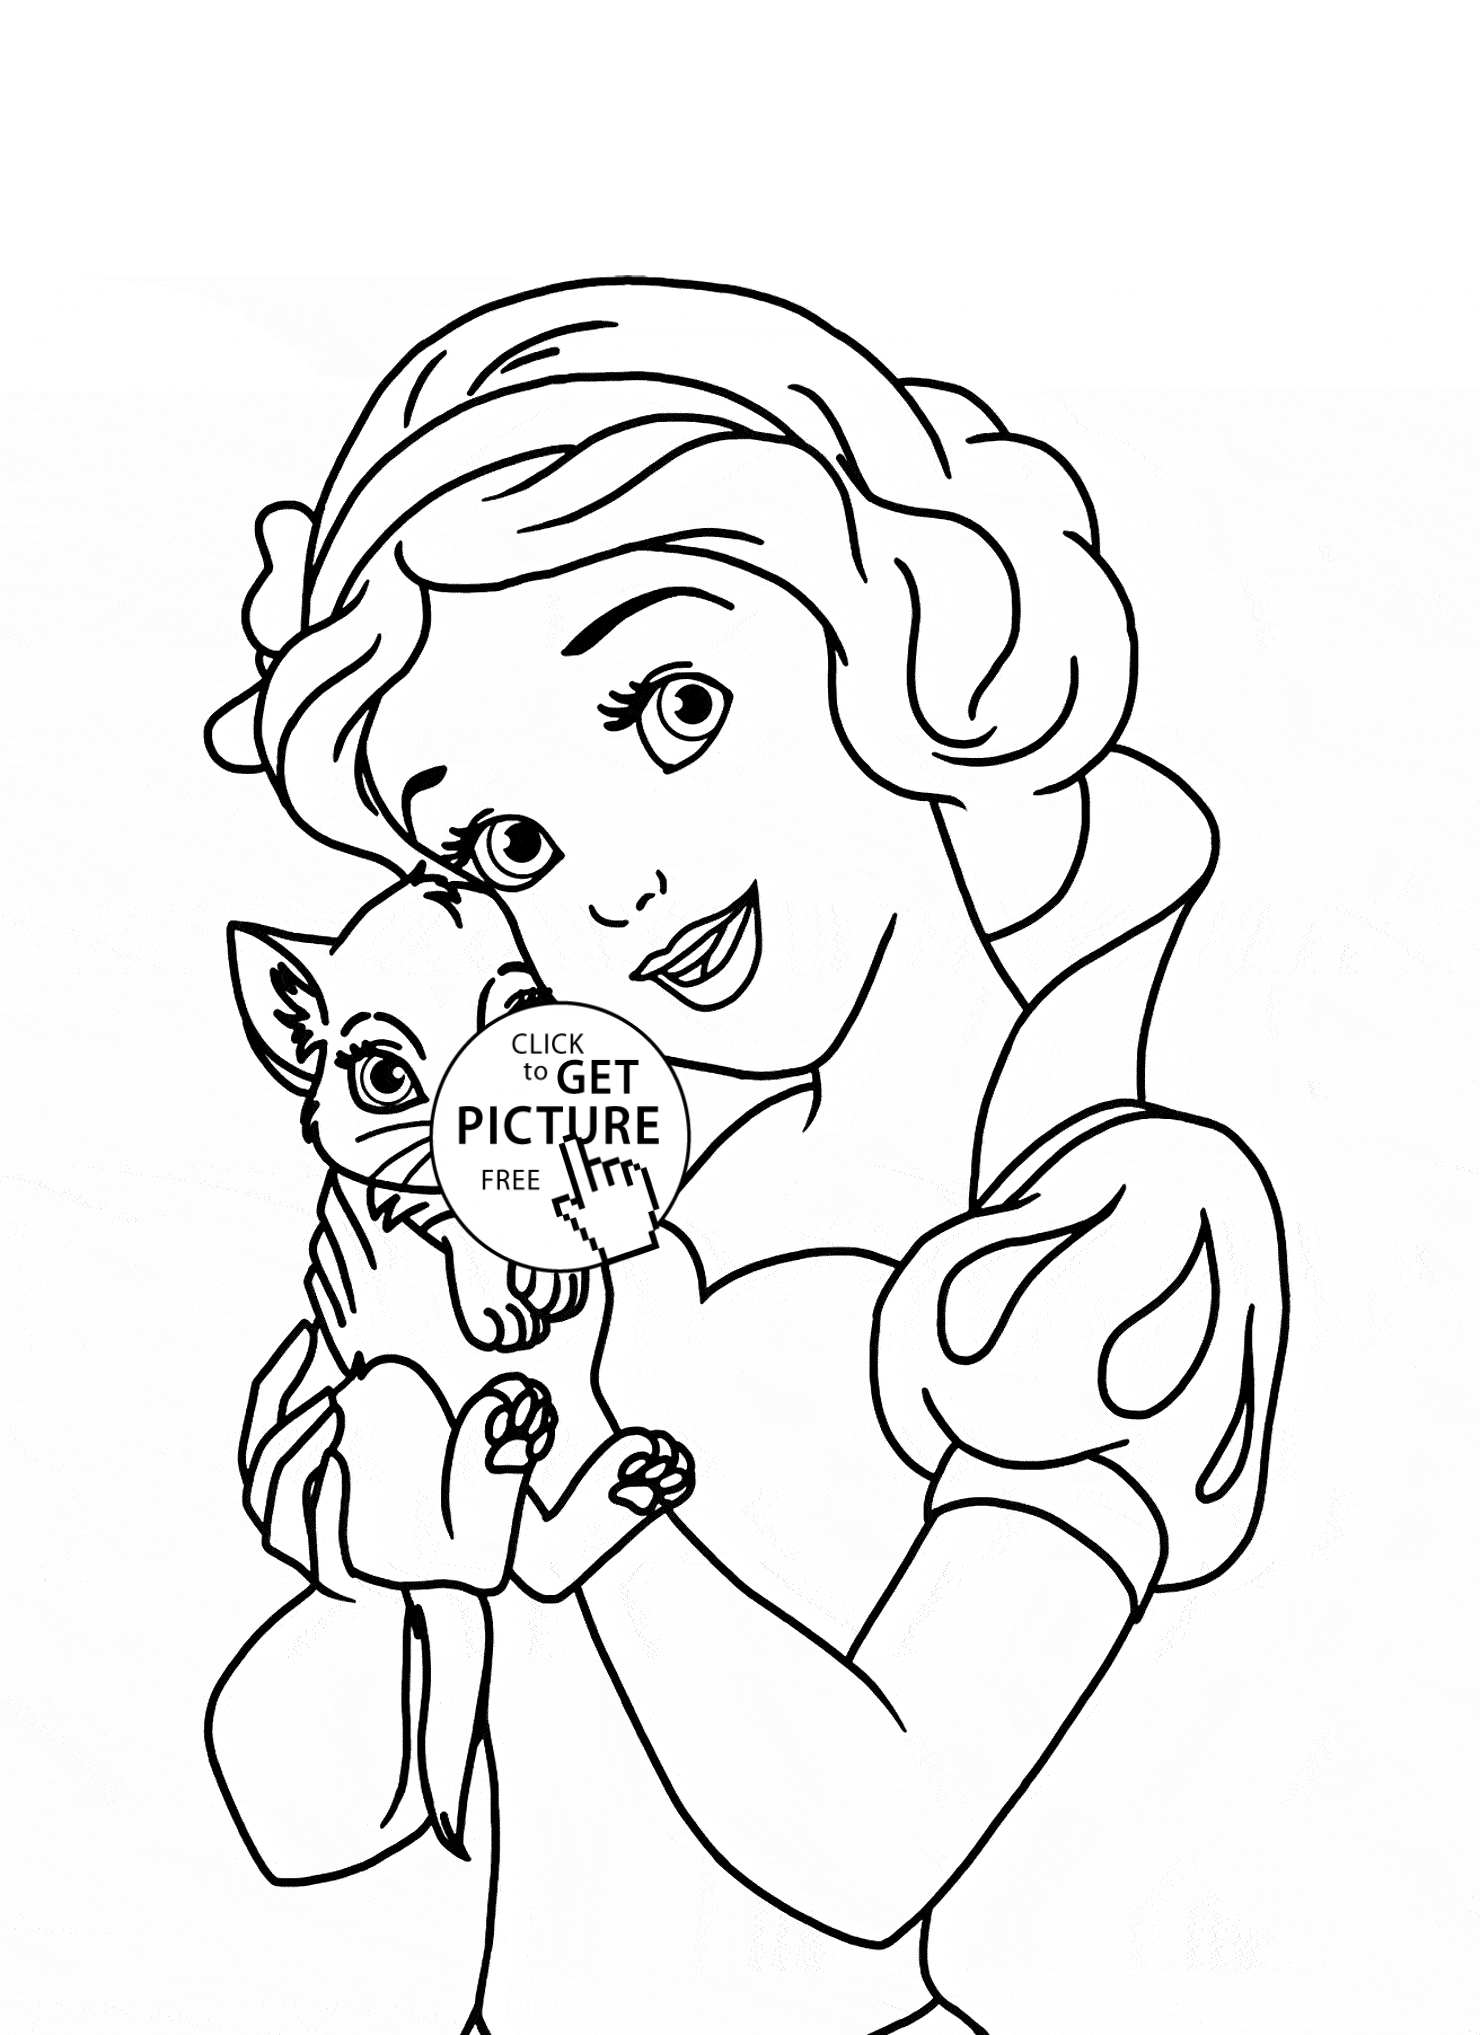 disney princess coloring pages free to print - disney princess belle with cat coloring page for kids disney princess coloring pages printables free